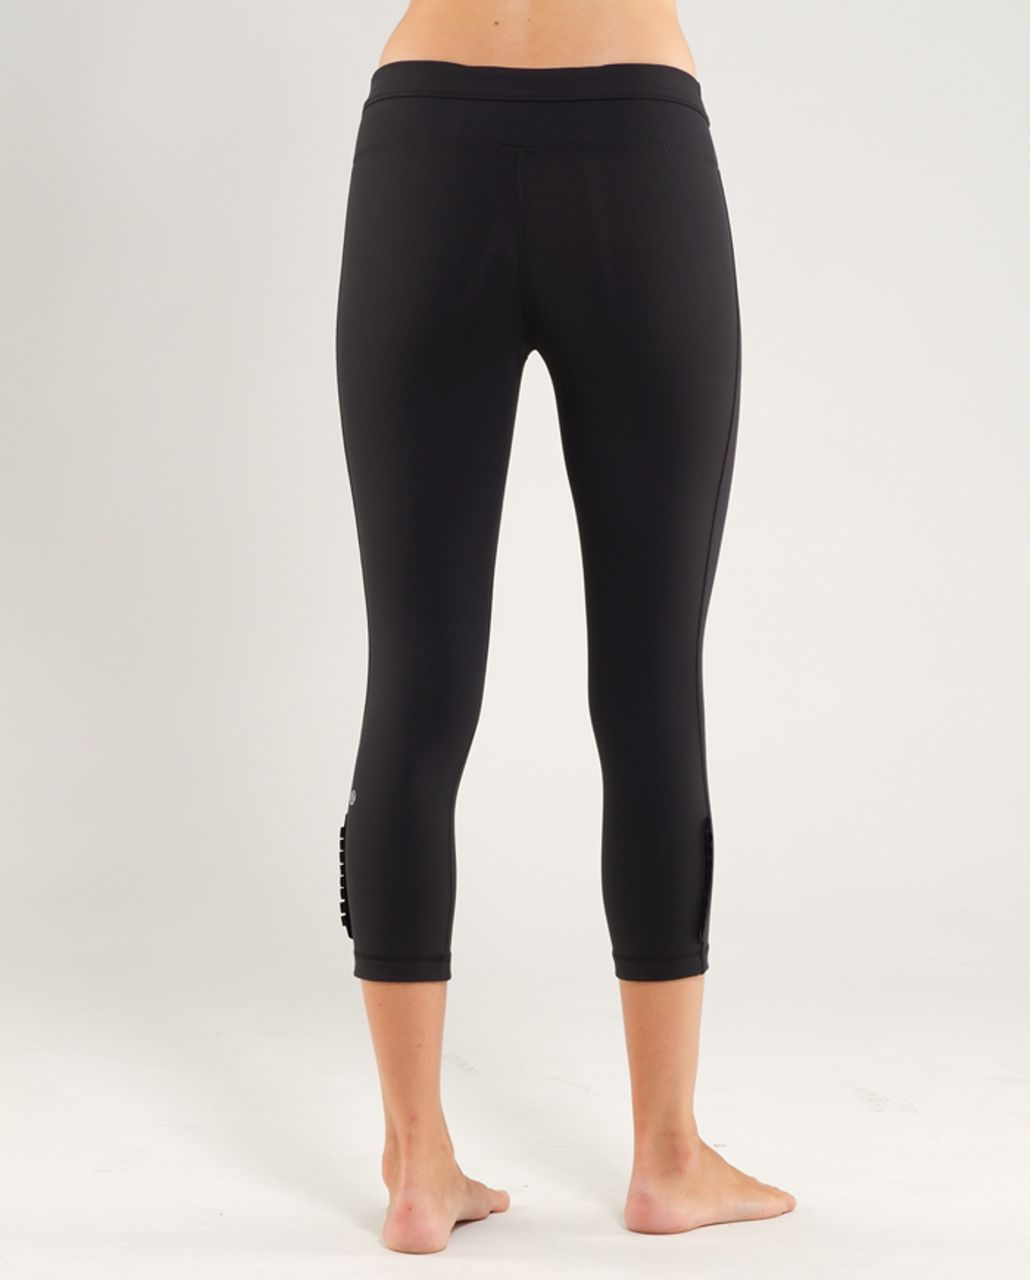 Lululemon Priiti Crop - Black